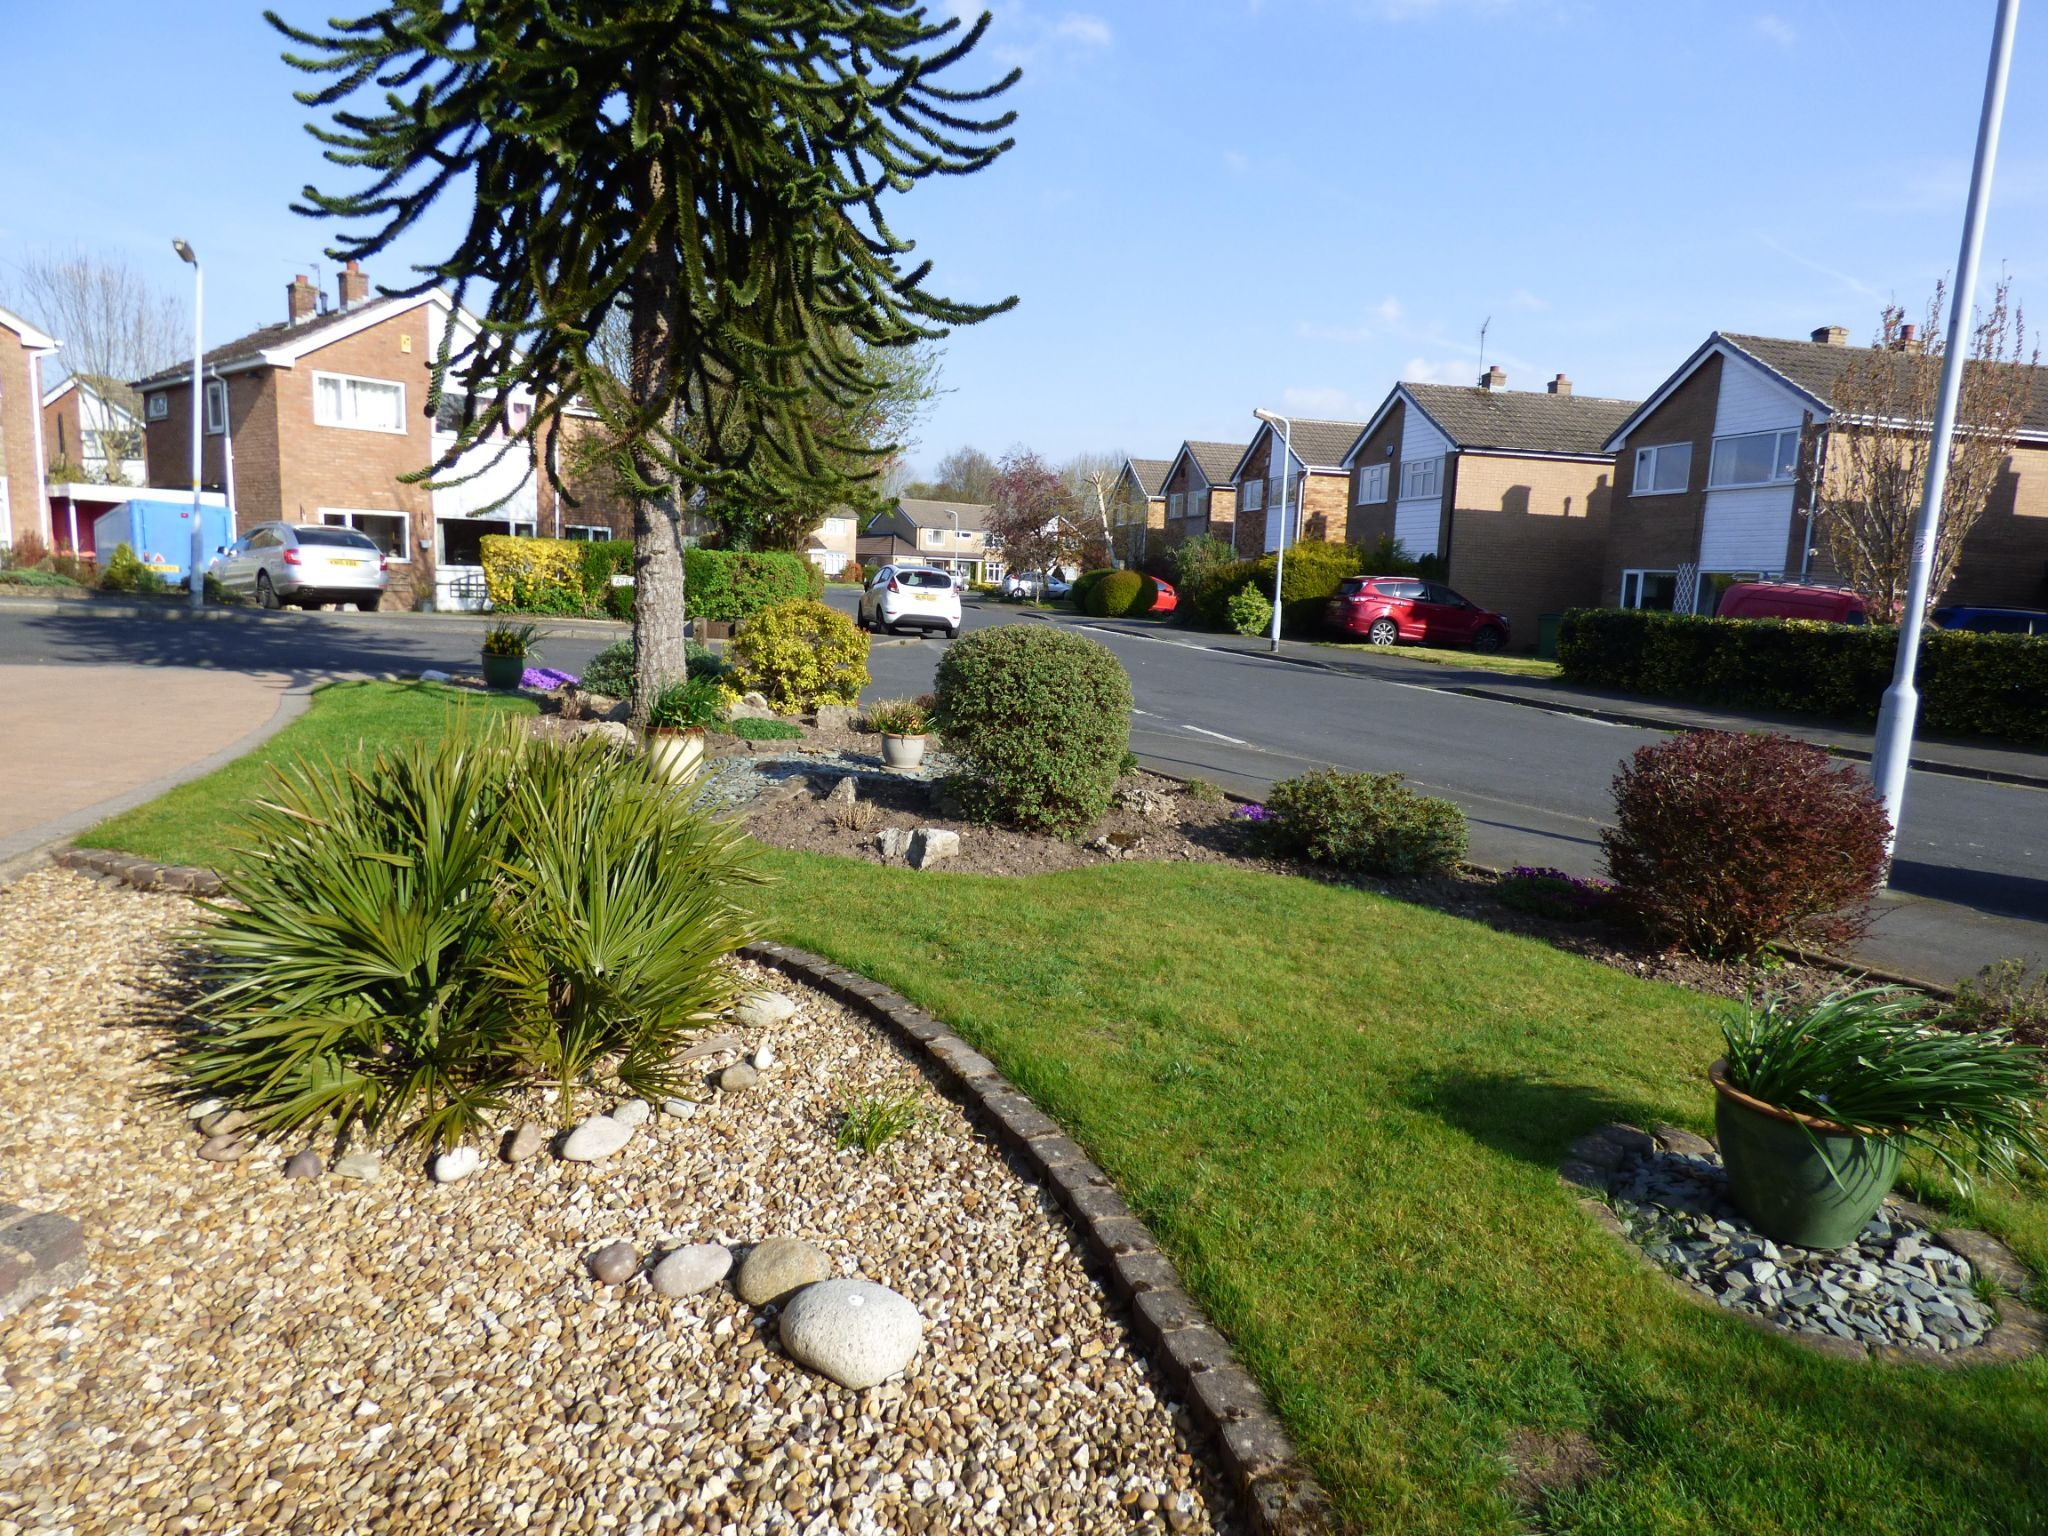 3 Bedroom Detached House For Sale - Front Garden View